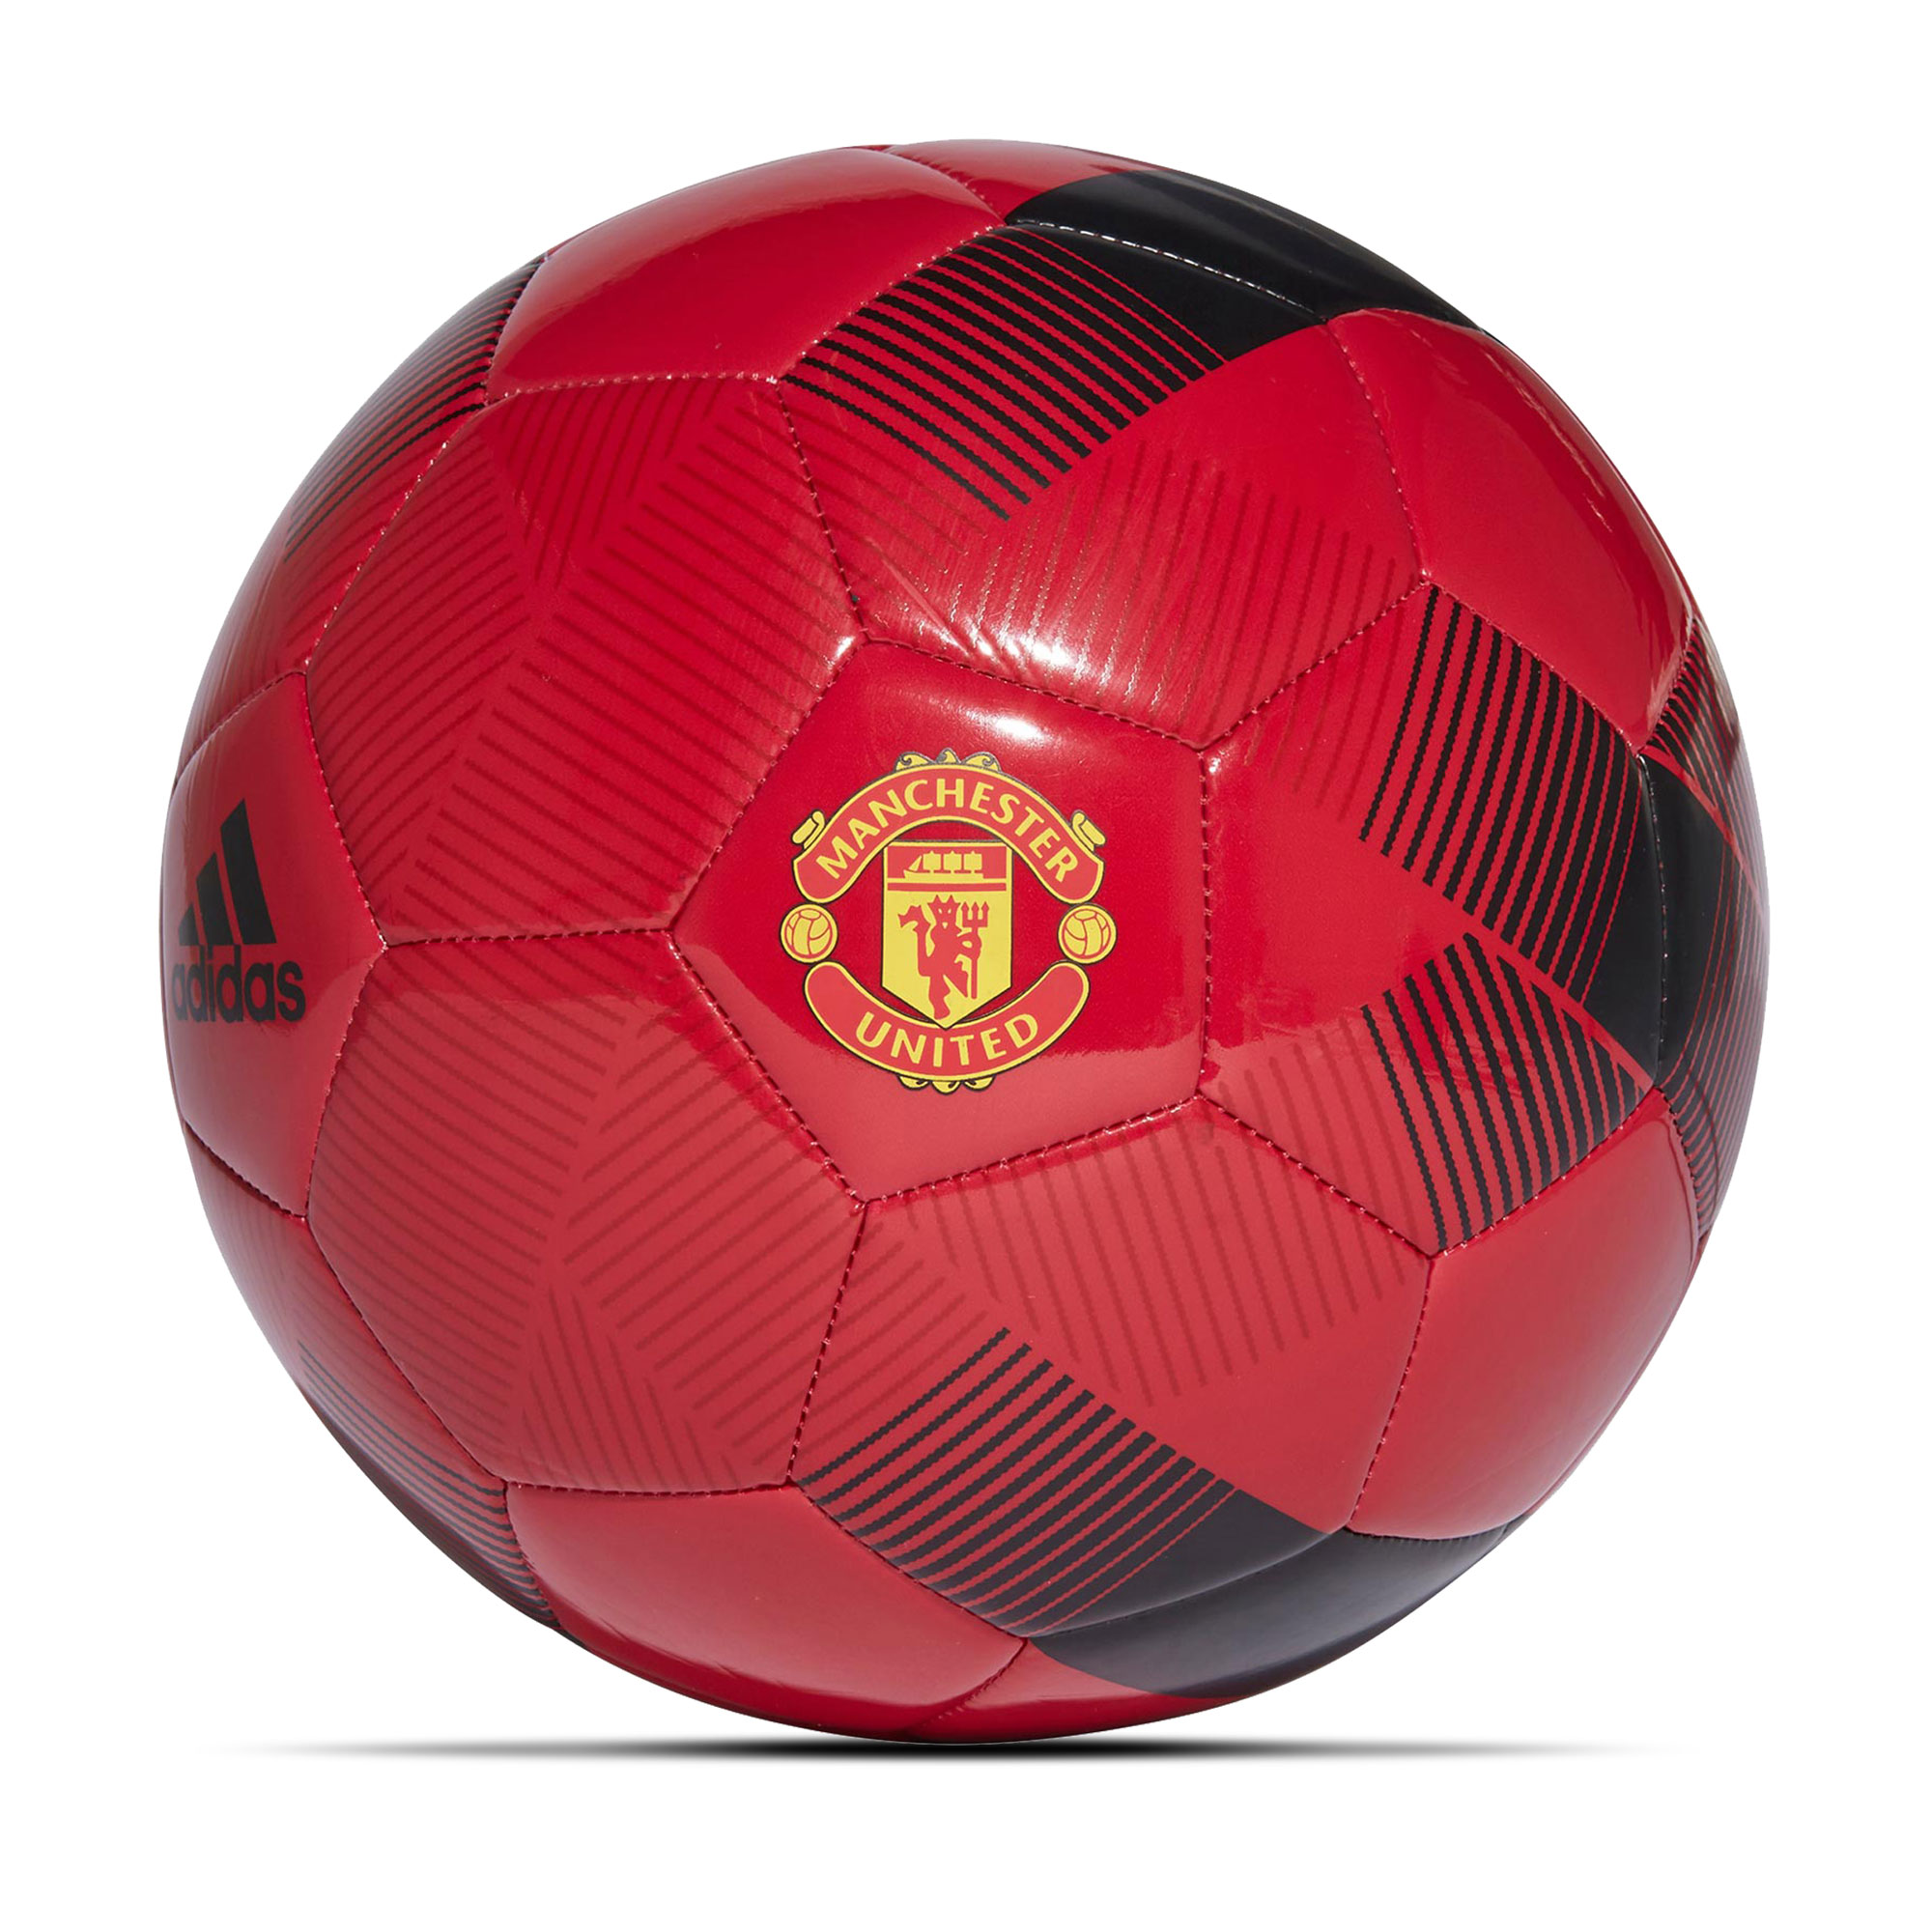 Ballon de football Manchester United - Rouge - Taille 5